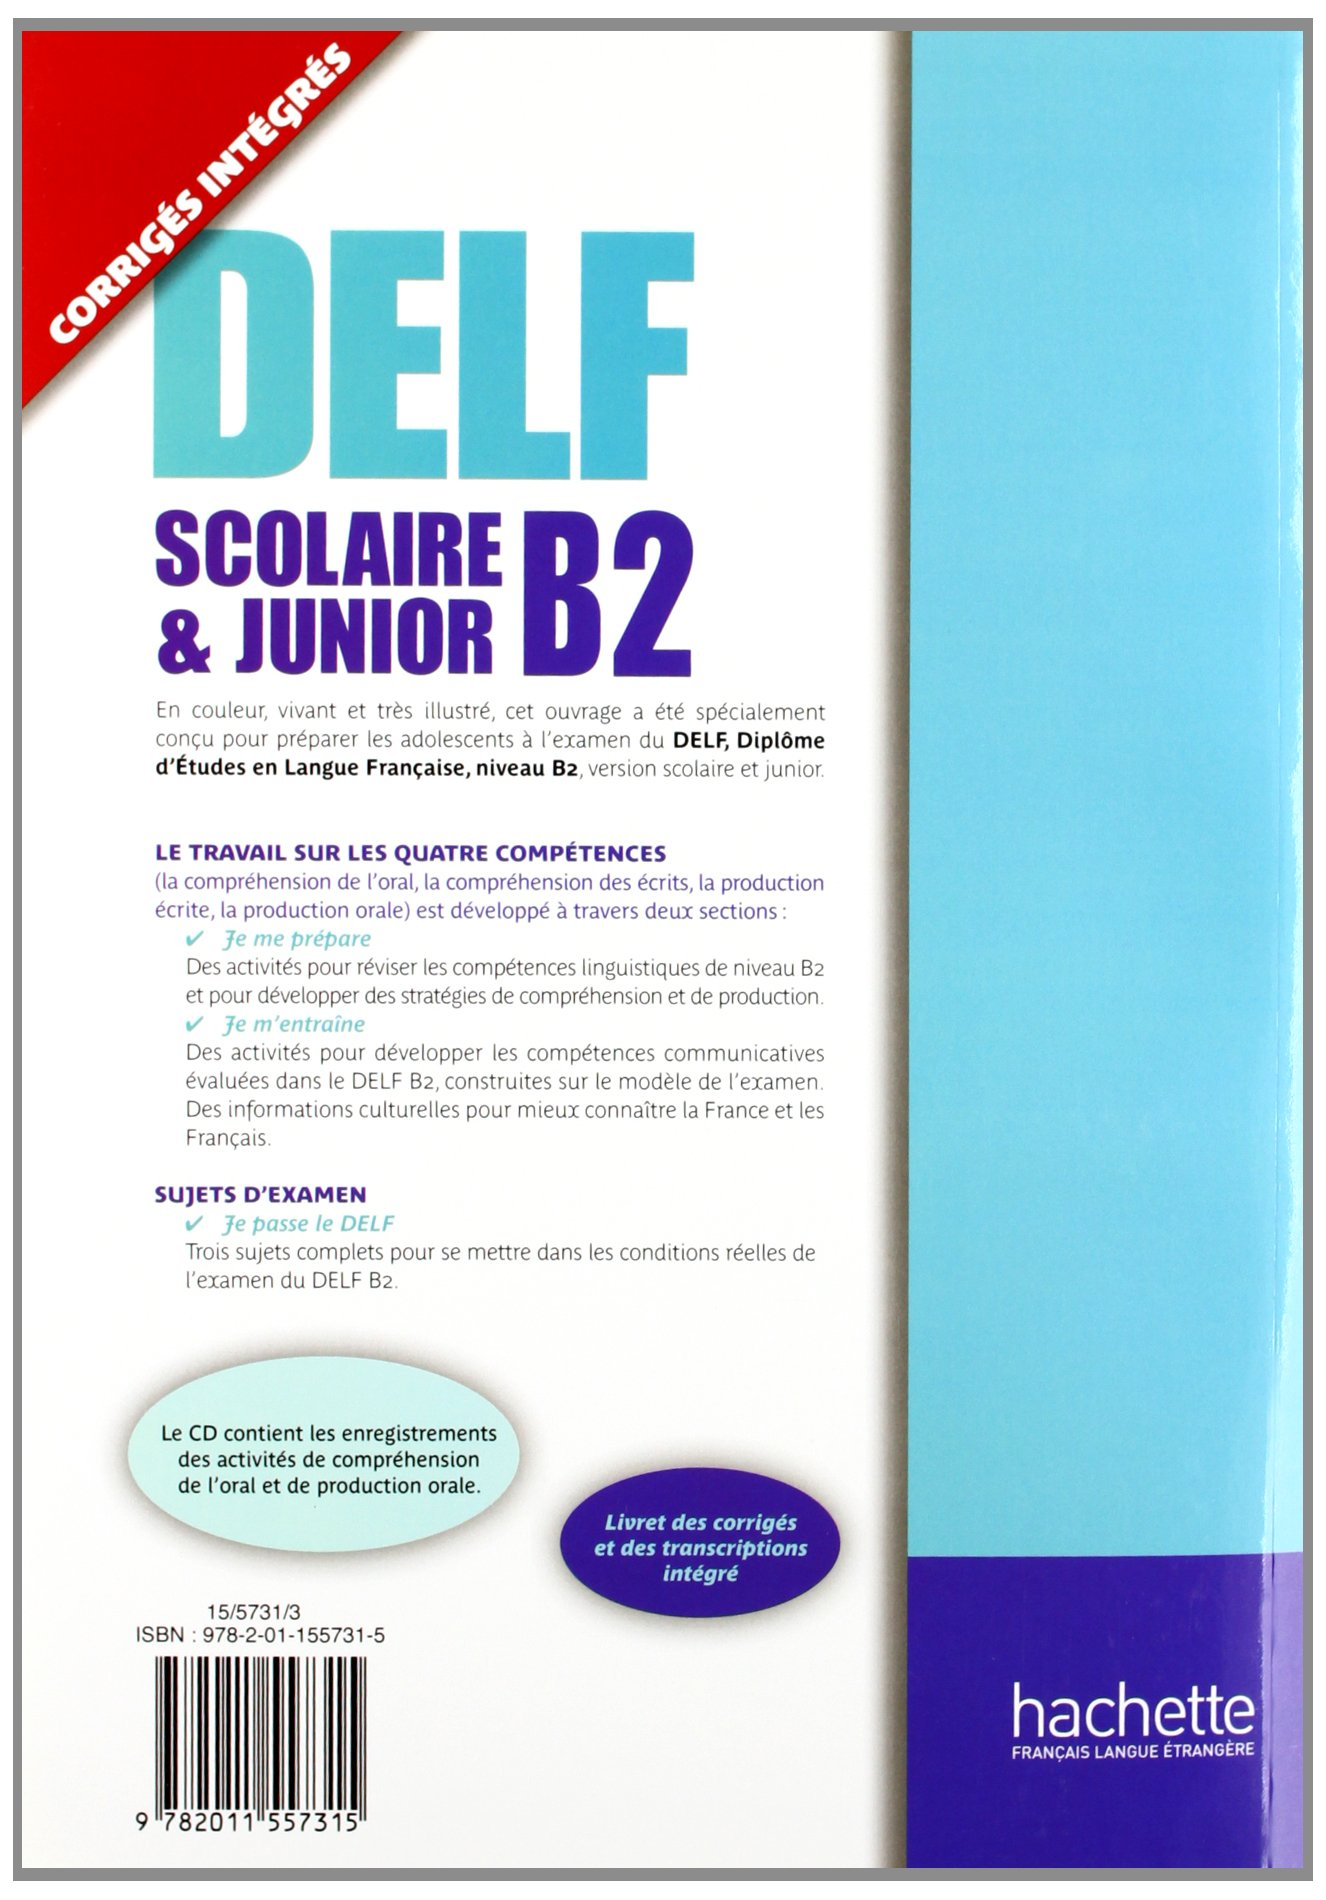 Delf B2 Scolaire Et Junior + CD (Delf/Dalf) (French Edition): Delphine Barreau, Helene Hullin: 9782011557315: Amazon.com: Books